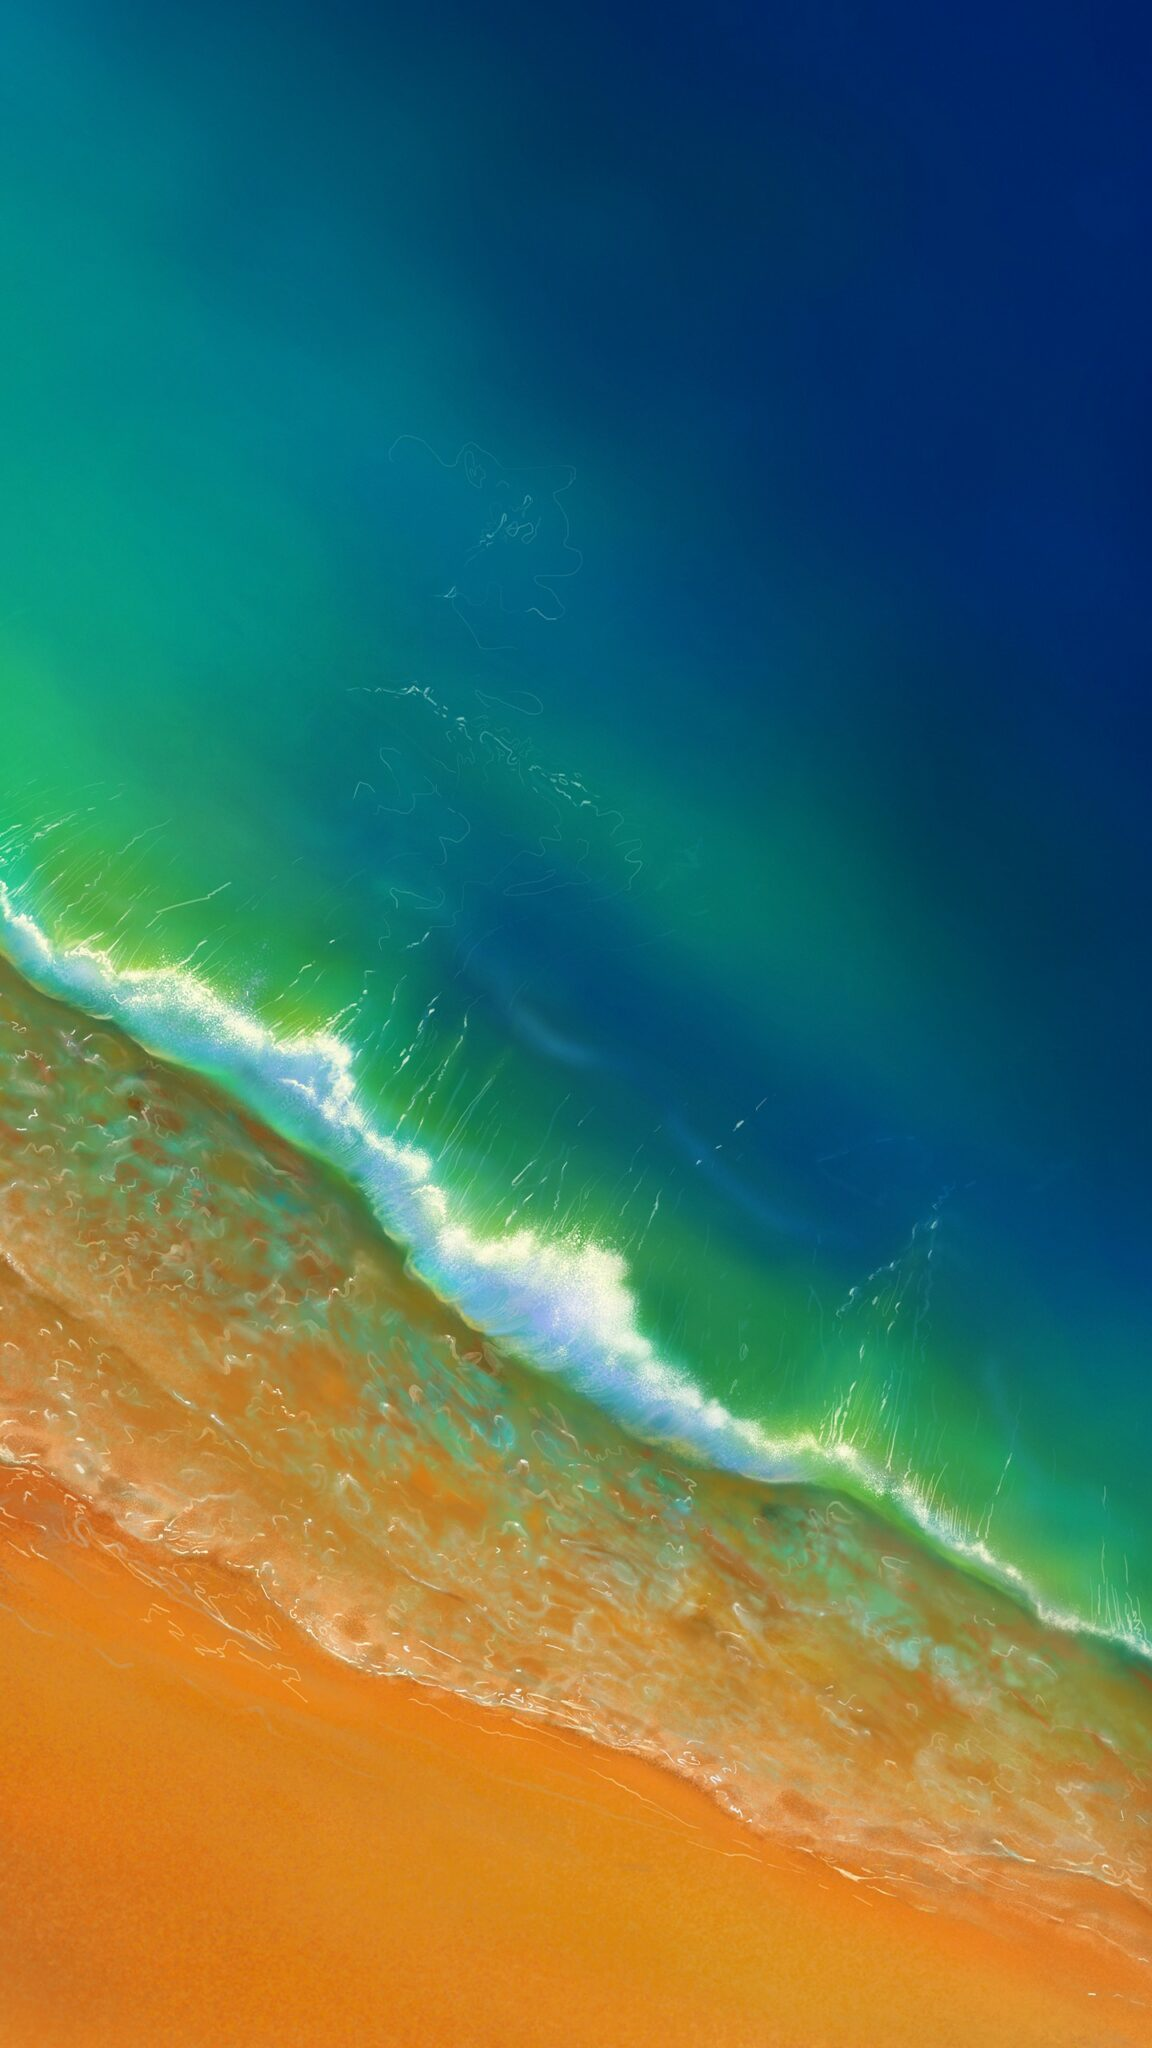 Awesome iPhone Wallpapers to Customize iOS 14 Home Screen 1152x2048